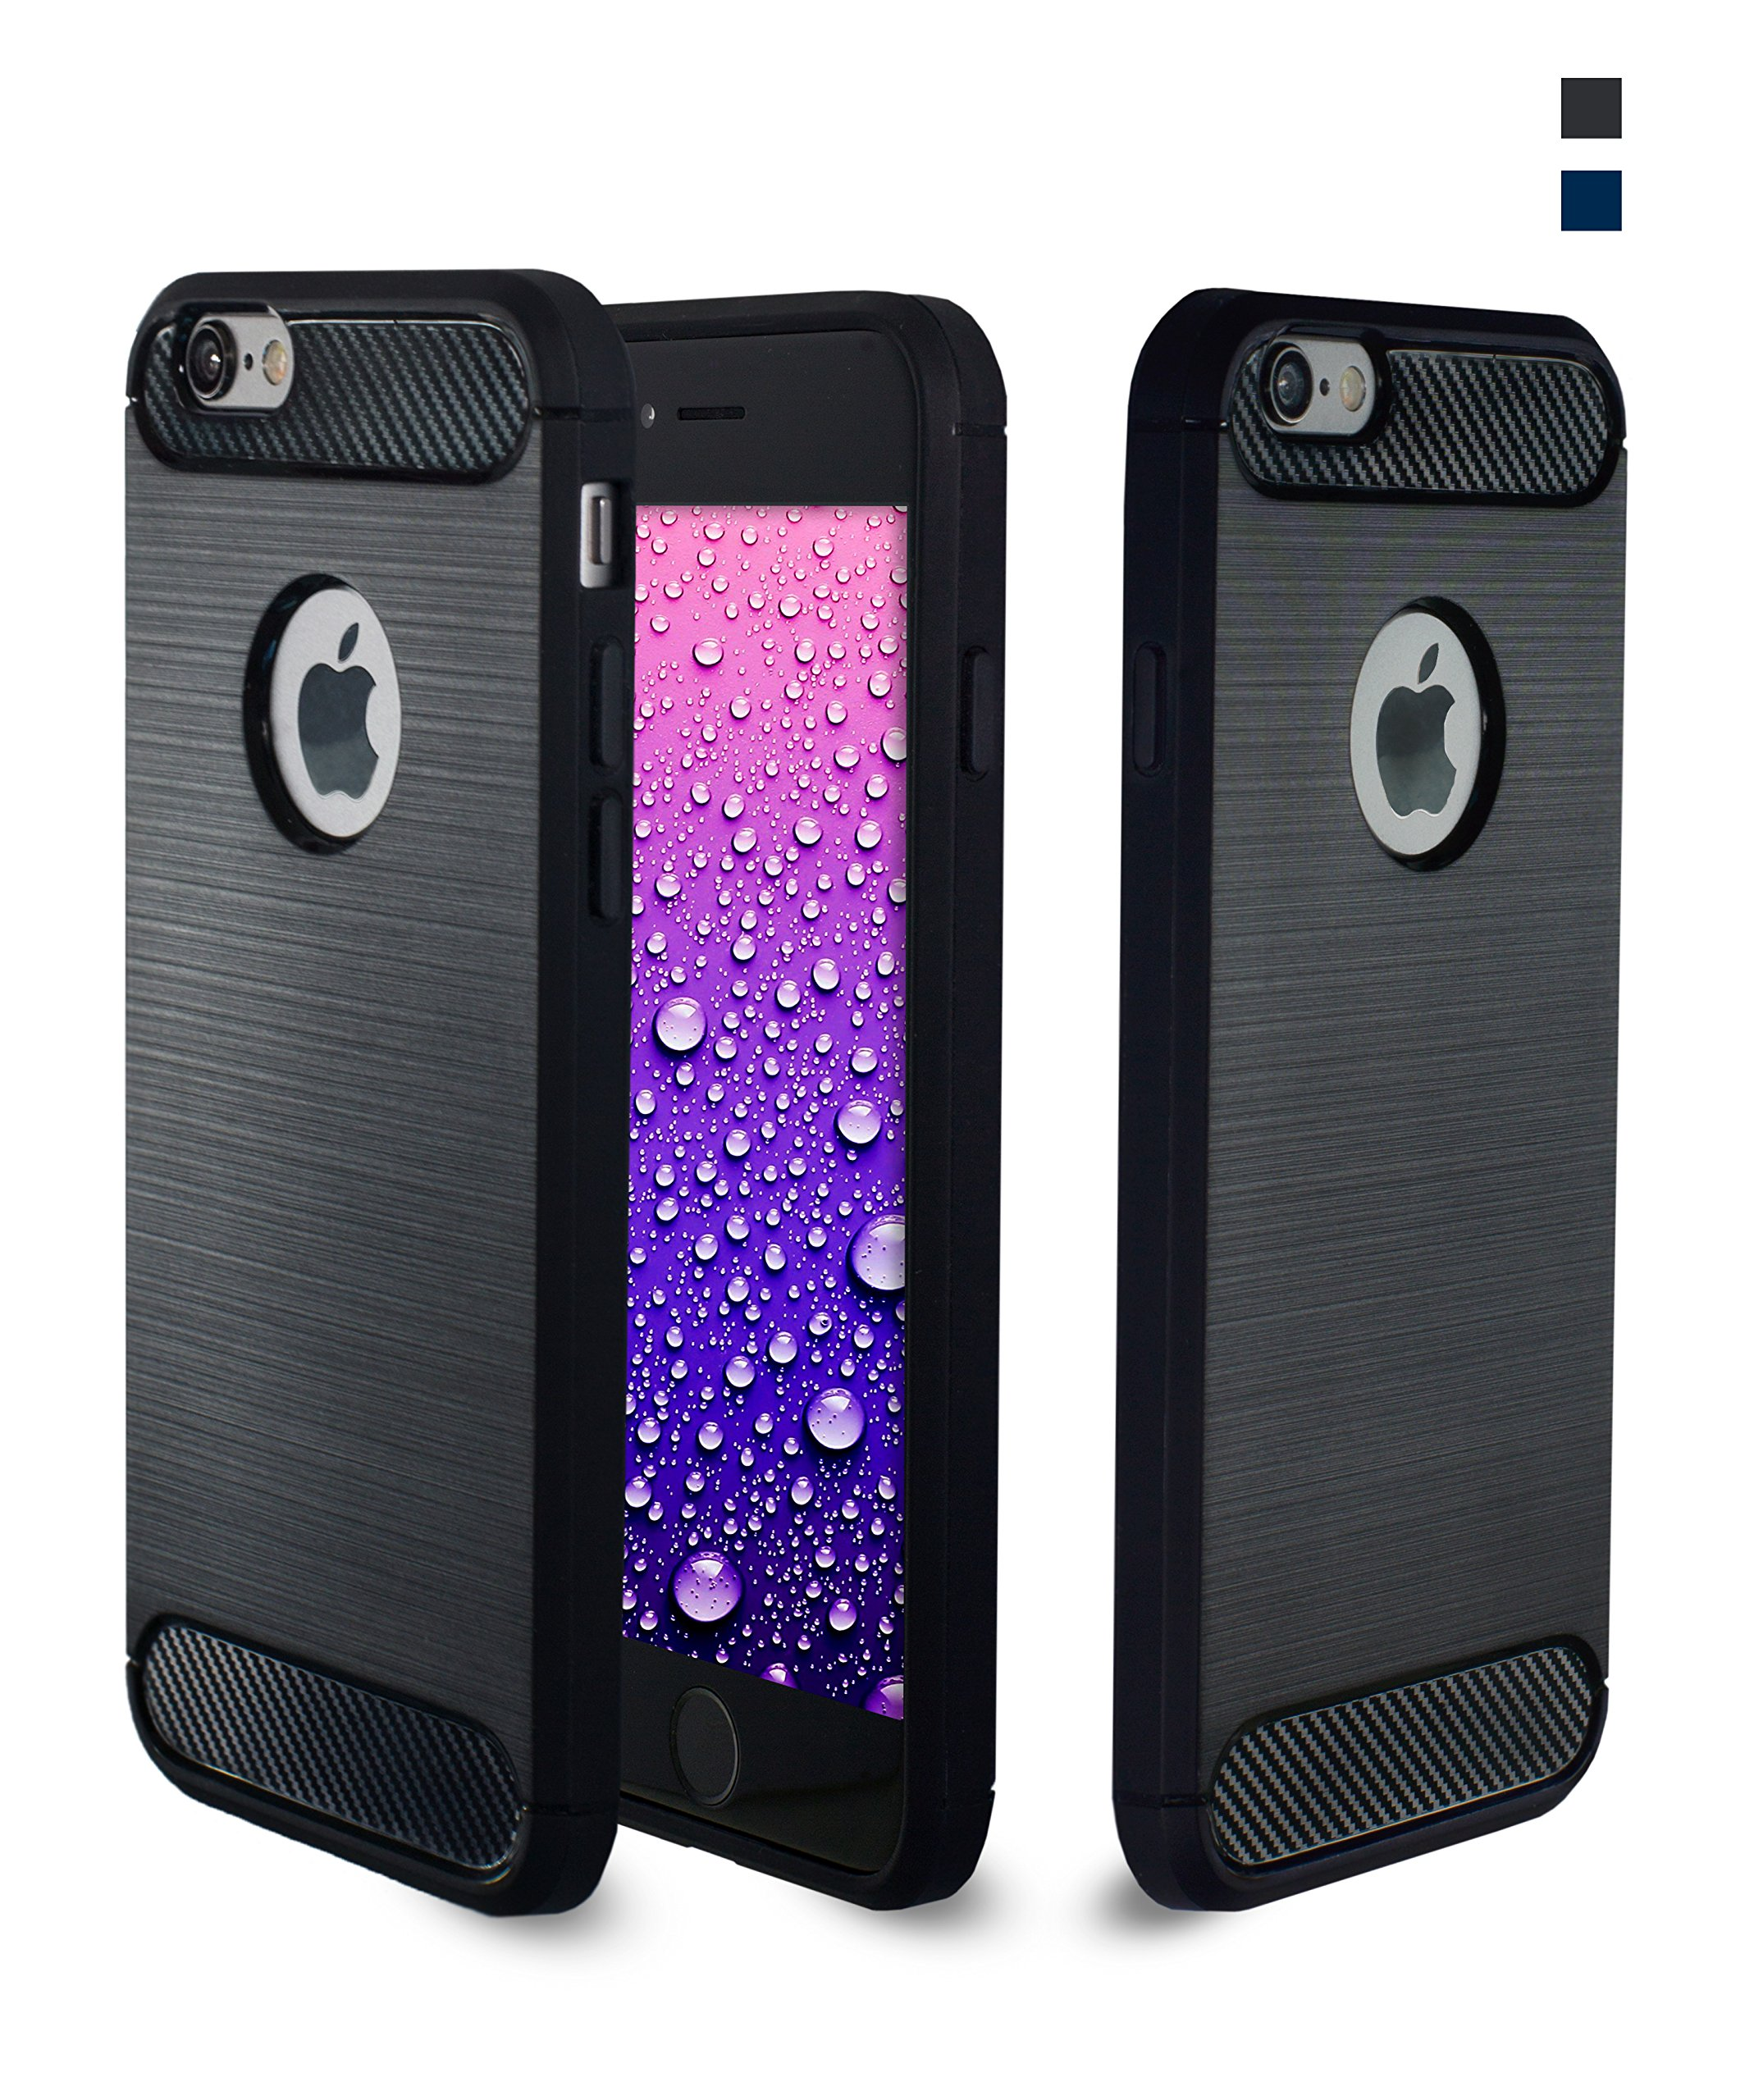 Habrok Carbon Case for iPhone 6 and 6S Black,silicone cases,unique armored drop proof holographic accessories, clear art design for phone dance shock proof,hard cheap defender for life,soft non slip